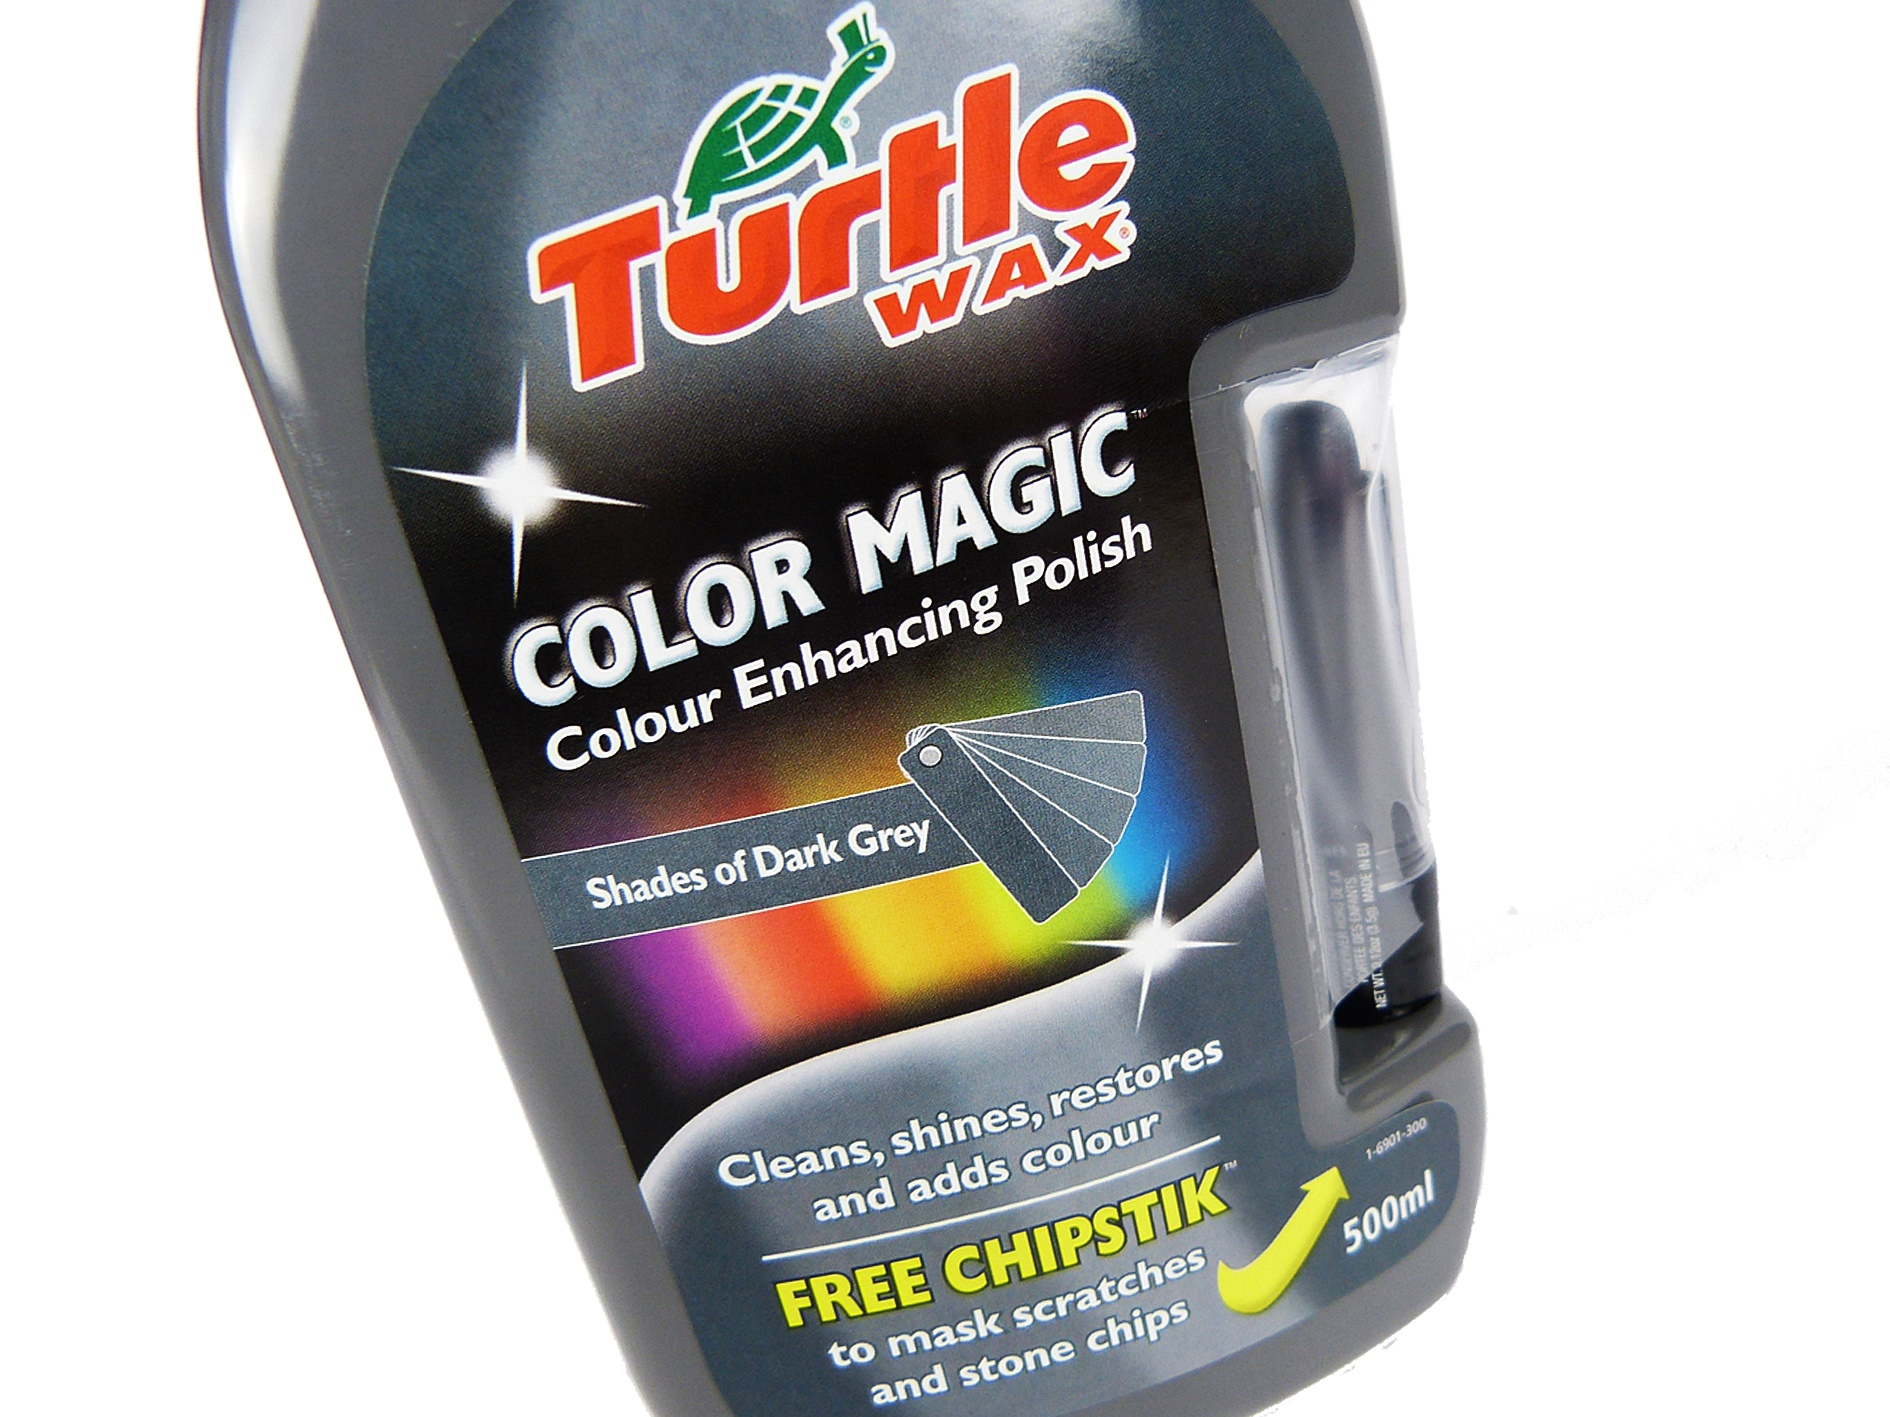 turtle wax colour magic dark grey car polish 500ml ebay. Black Bedroom Furniture Sets. Home Design Ideas